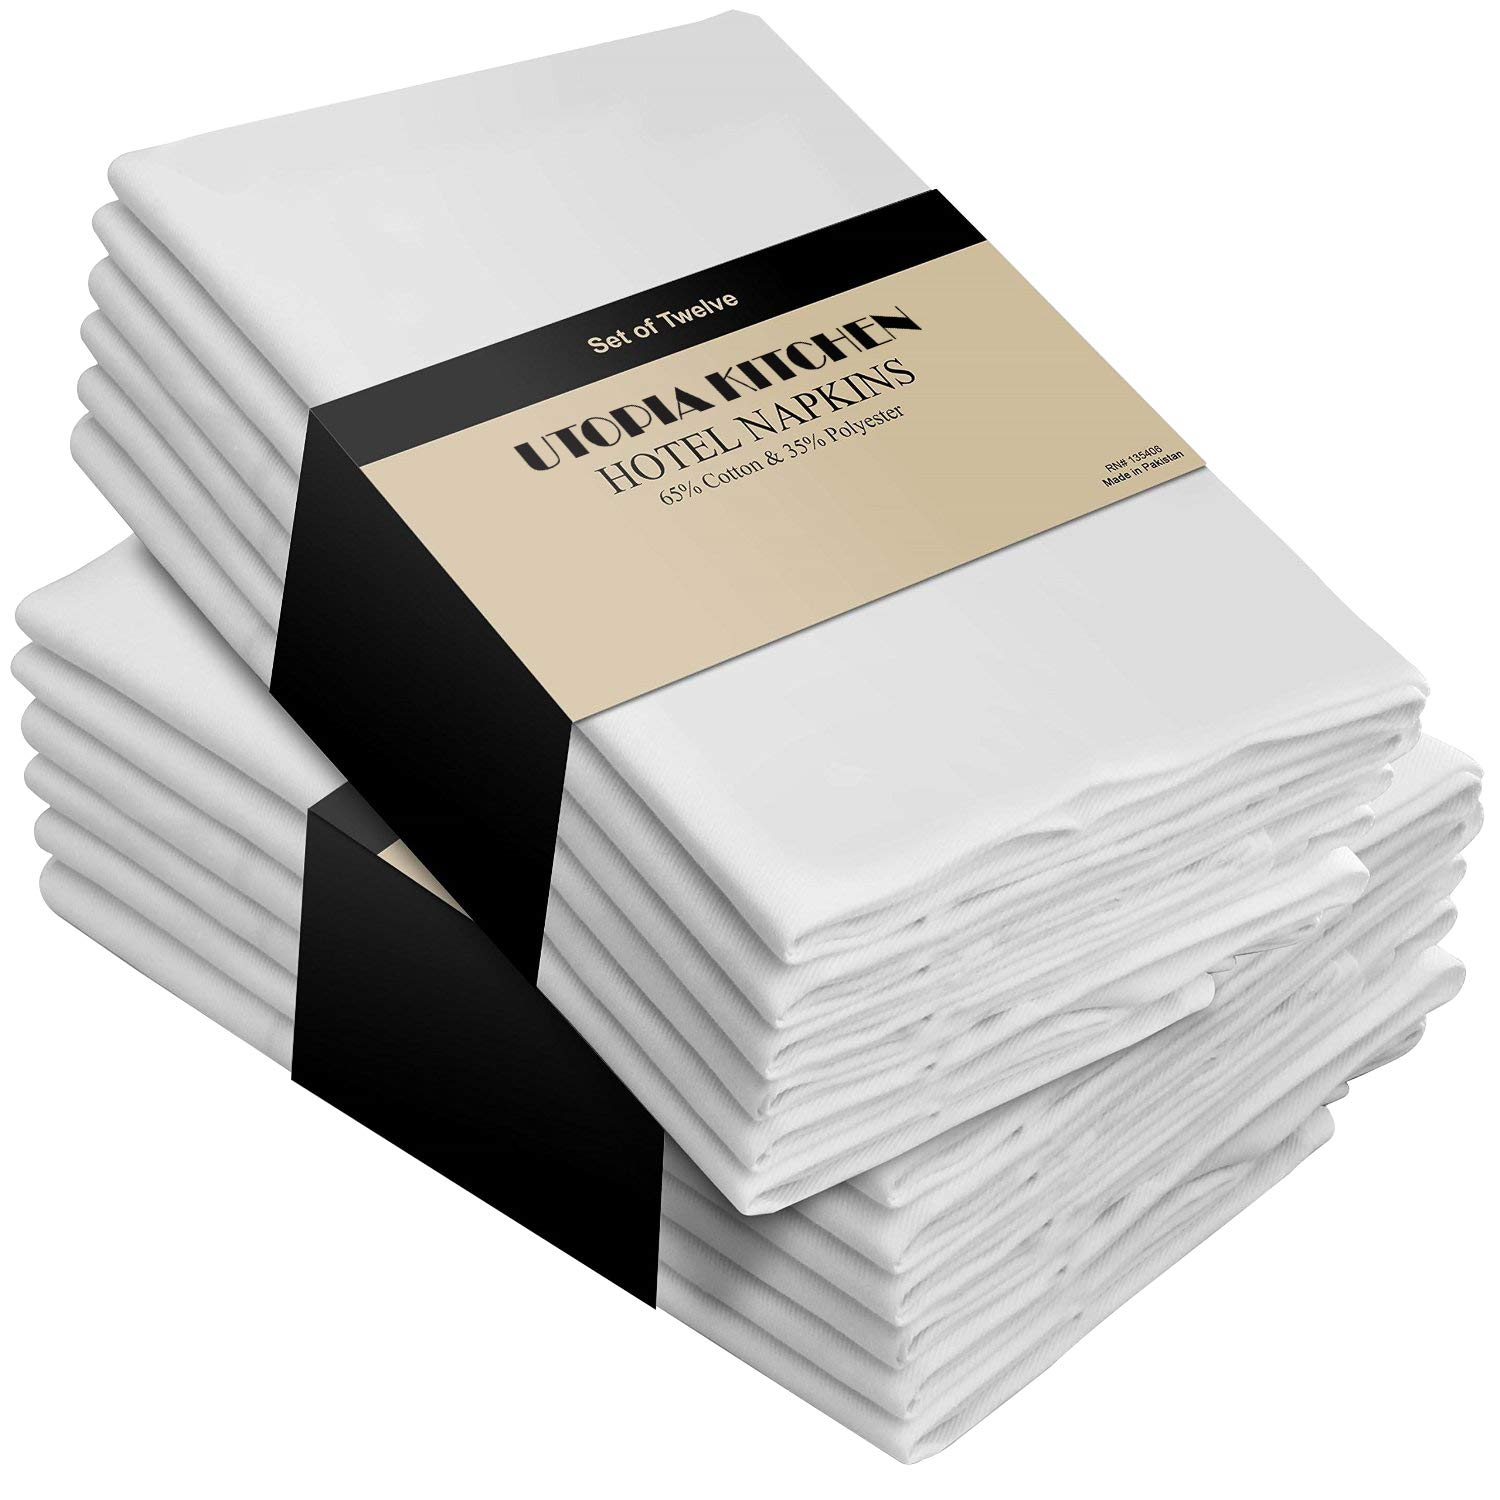 Utopia Kitchen Cloth Napkins (18 inches x 18 inches) - Soft and Comfortable Cotton Dinner Napkins - Durable Hotel Quality Cotton Napkins - Ideal for Events and Regular Home Use